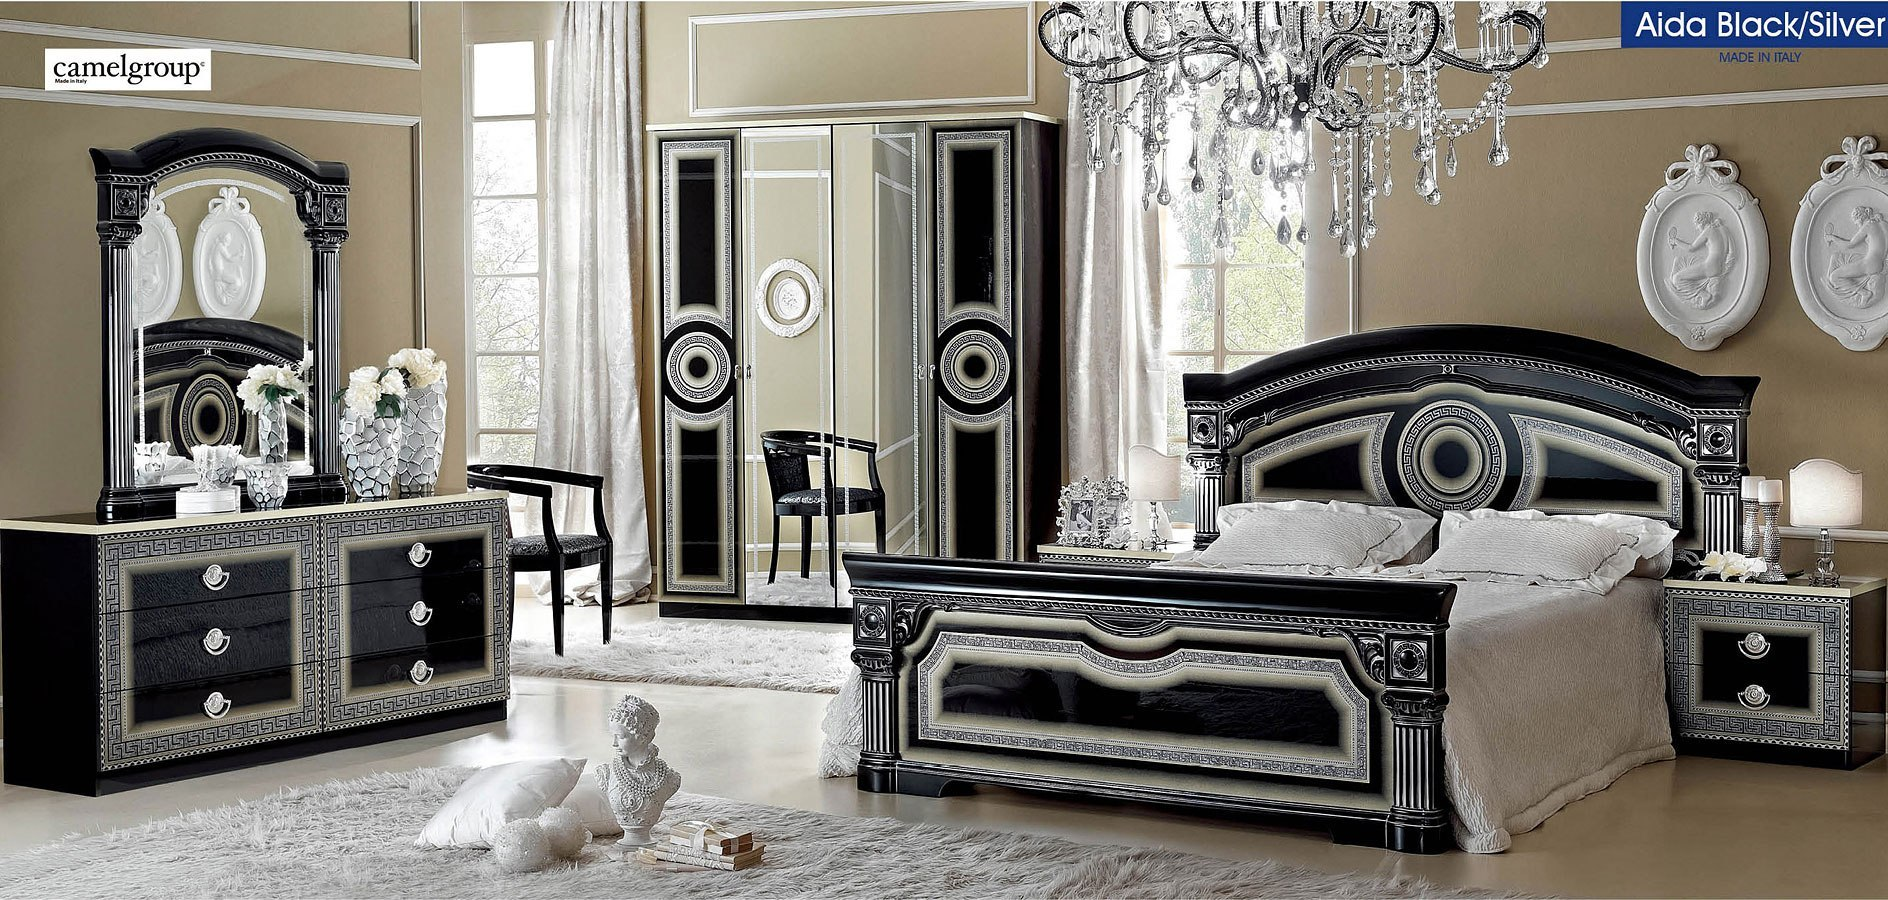 Aida Panel Bedroom Set Black And Silver By Esf Furniture